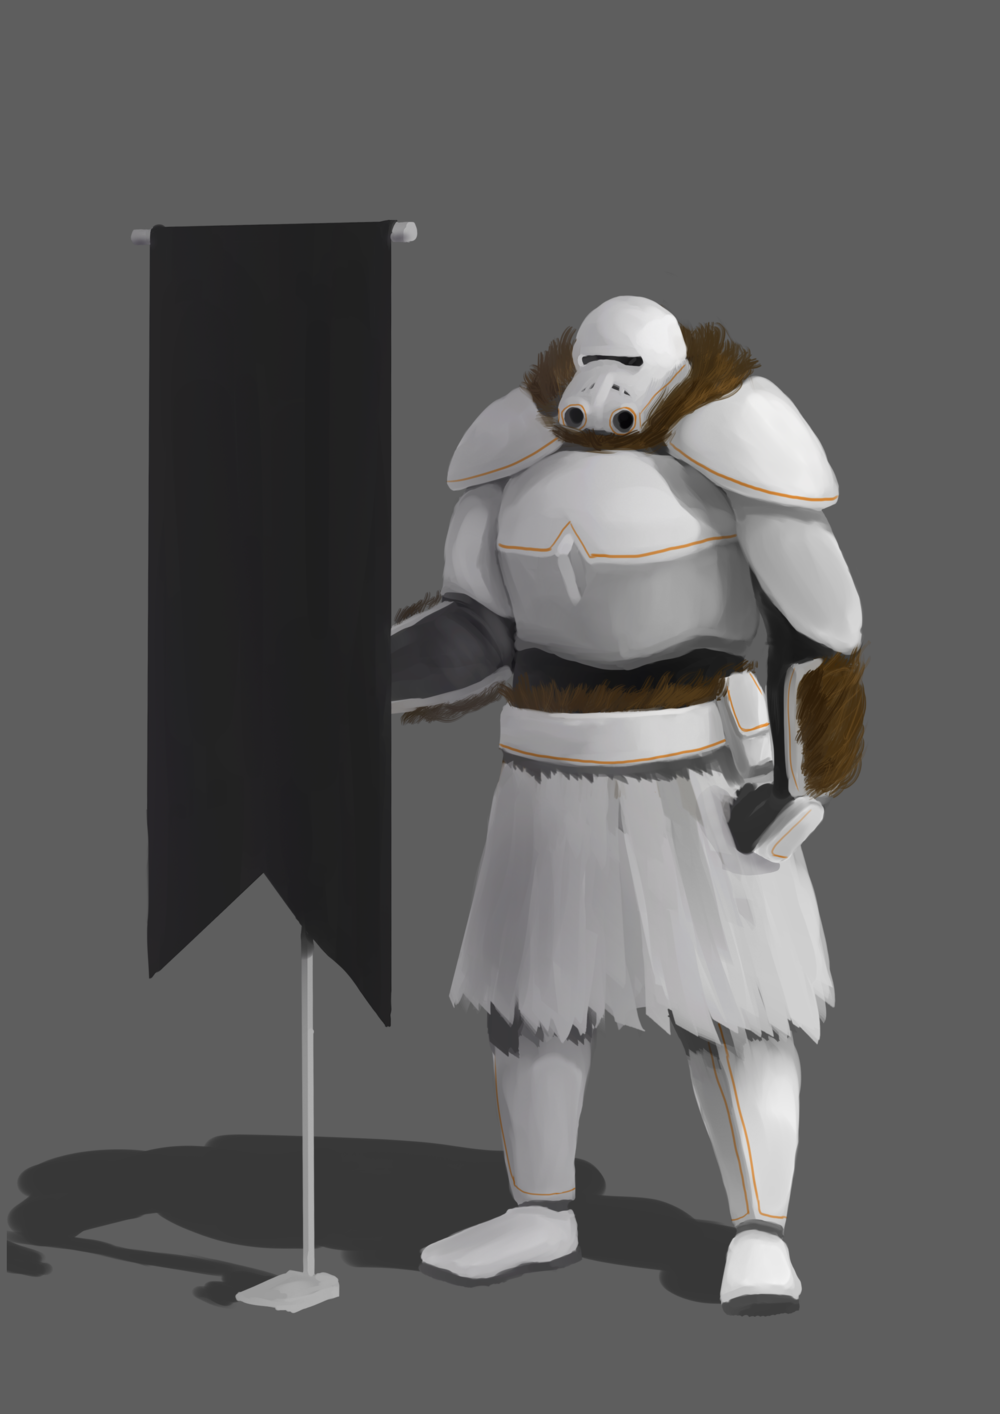 "Solution to character design challenge: Design a  Stormtrooper from Star Wars if it were ""max level"" in a video game sense, presuming the ones seen in the original trilogy are  level 1. Inspiration taken from Destiny which I was playing a lot at the time."